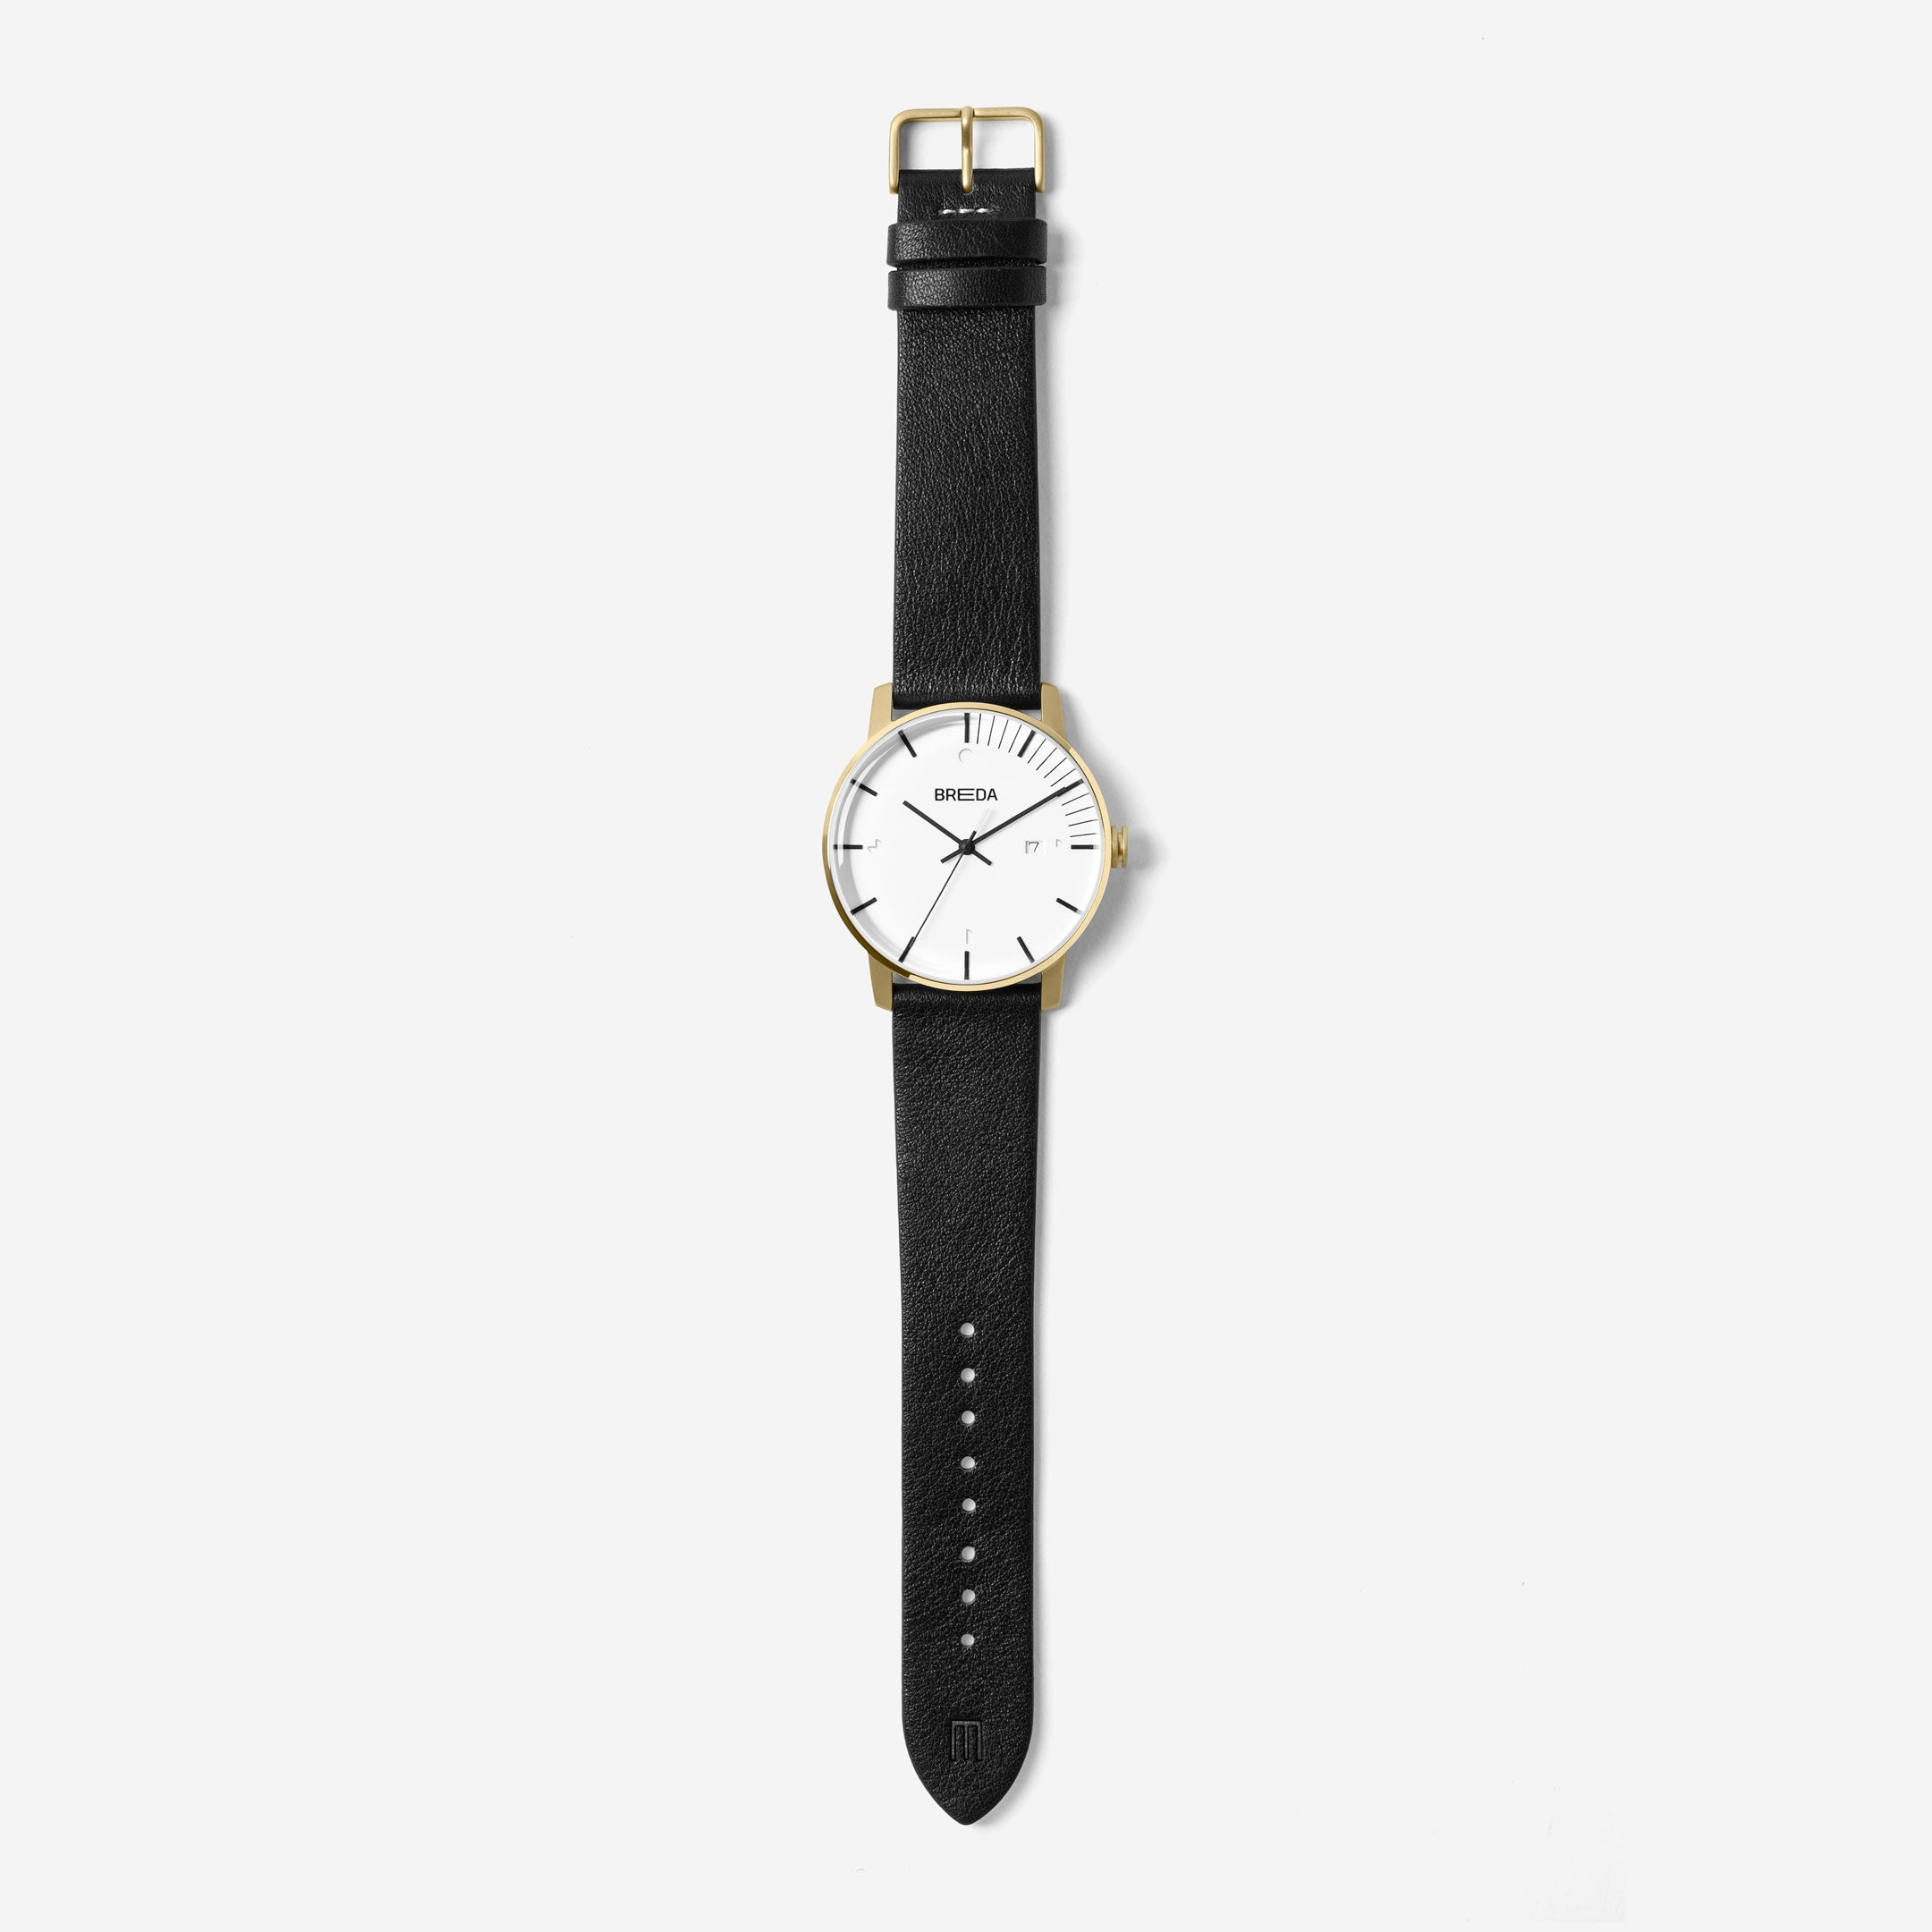 //cdn.shopify.com/s/files/1/0879/6650/products/breda-phase-9000d-gold-black-watch-long_1024x1024.jpg?v=1491411752